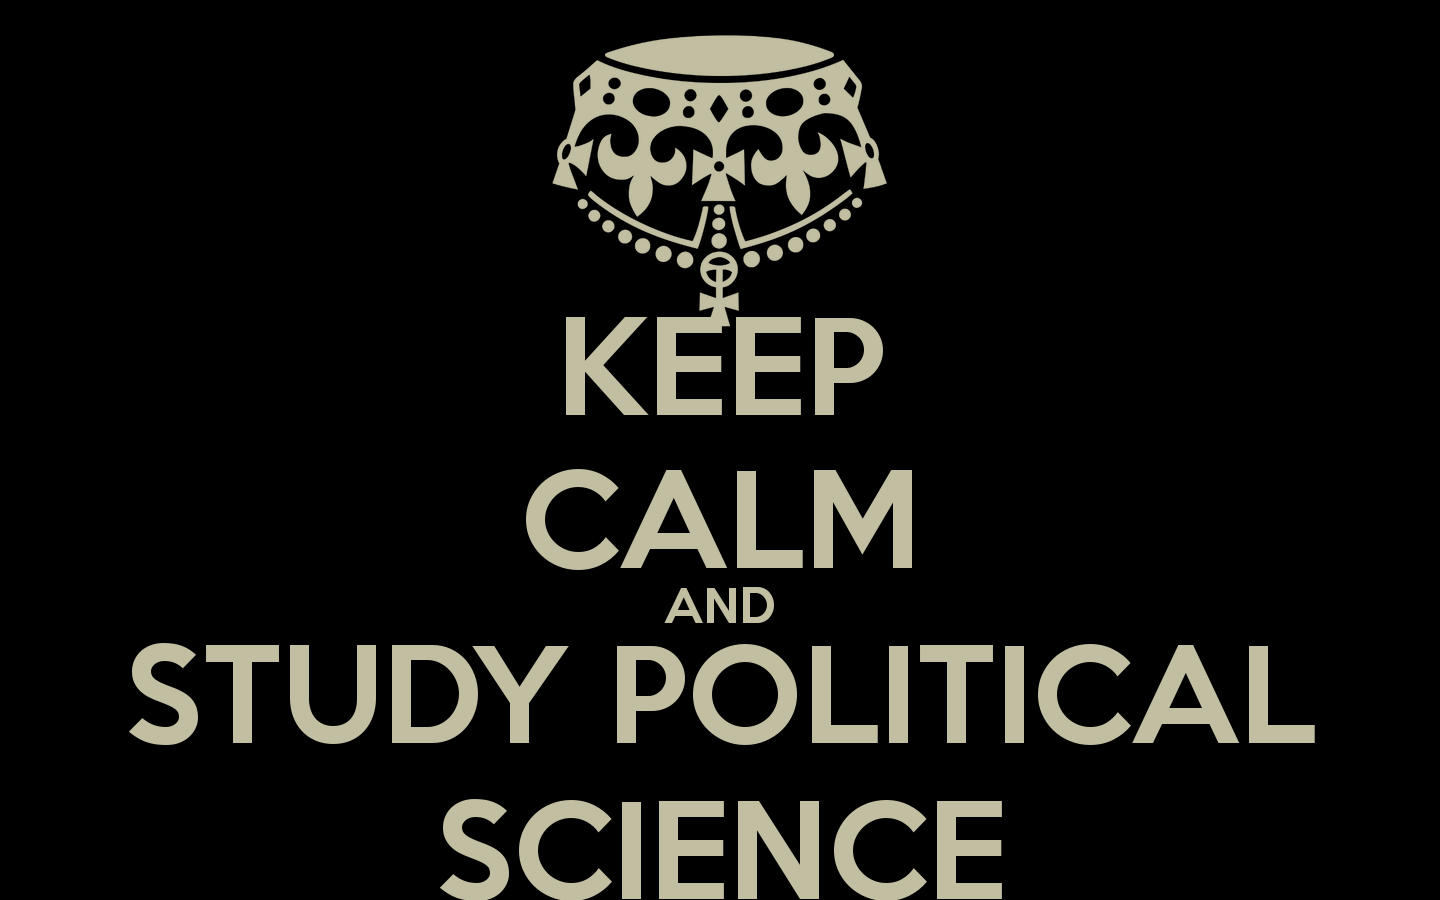 Download political science wallpaper gallery - Political wallpaper ...